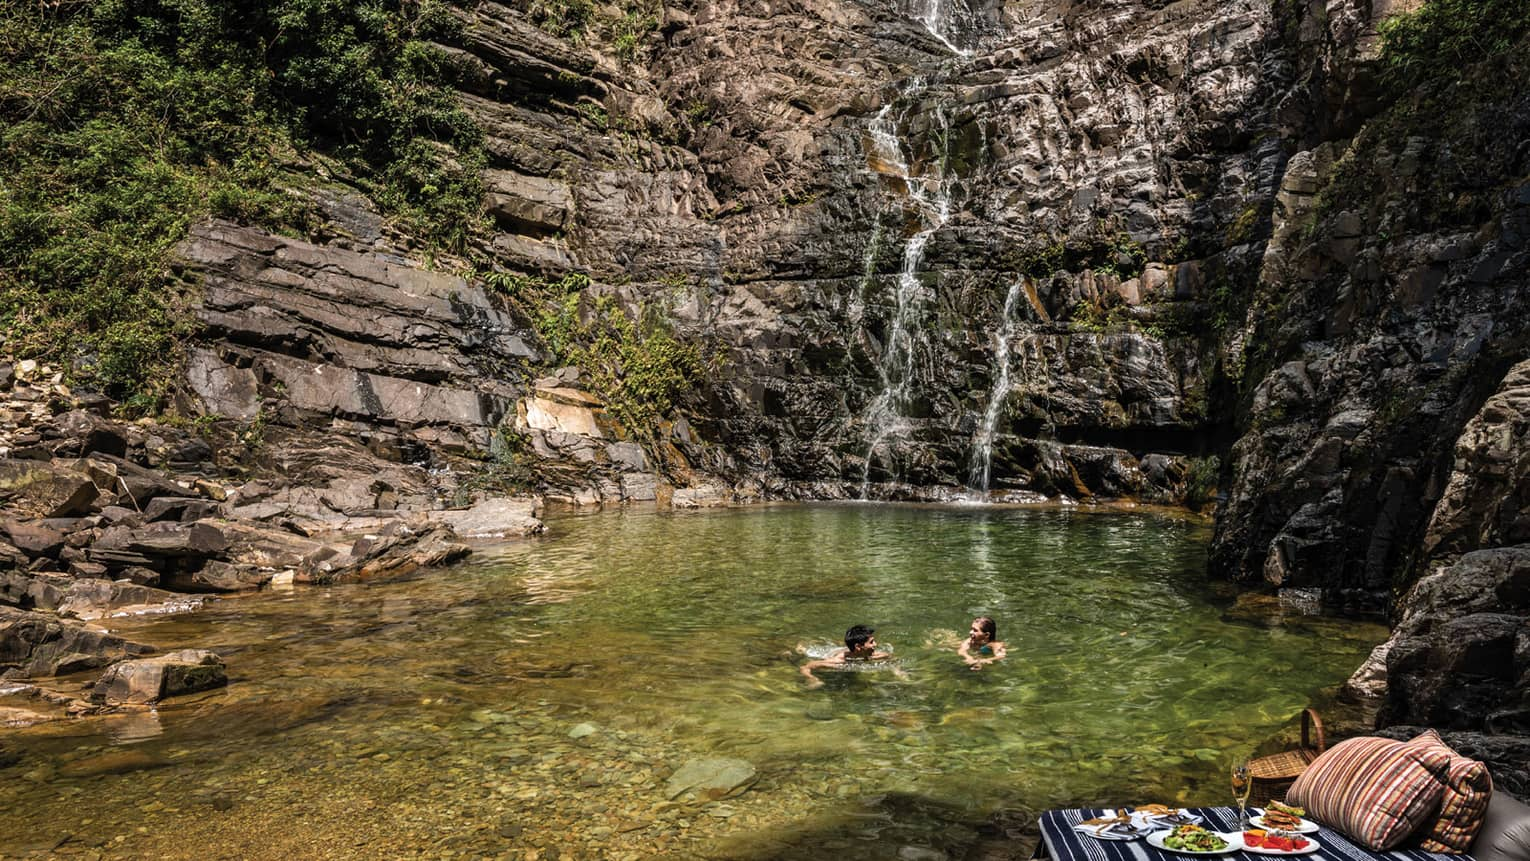 Couple swims in pool at base of waterfall, picnic lunch on rocks